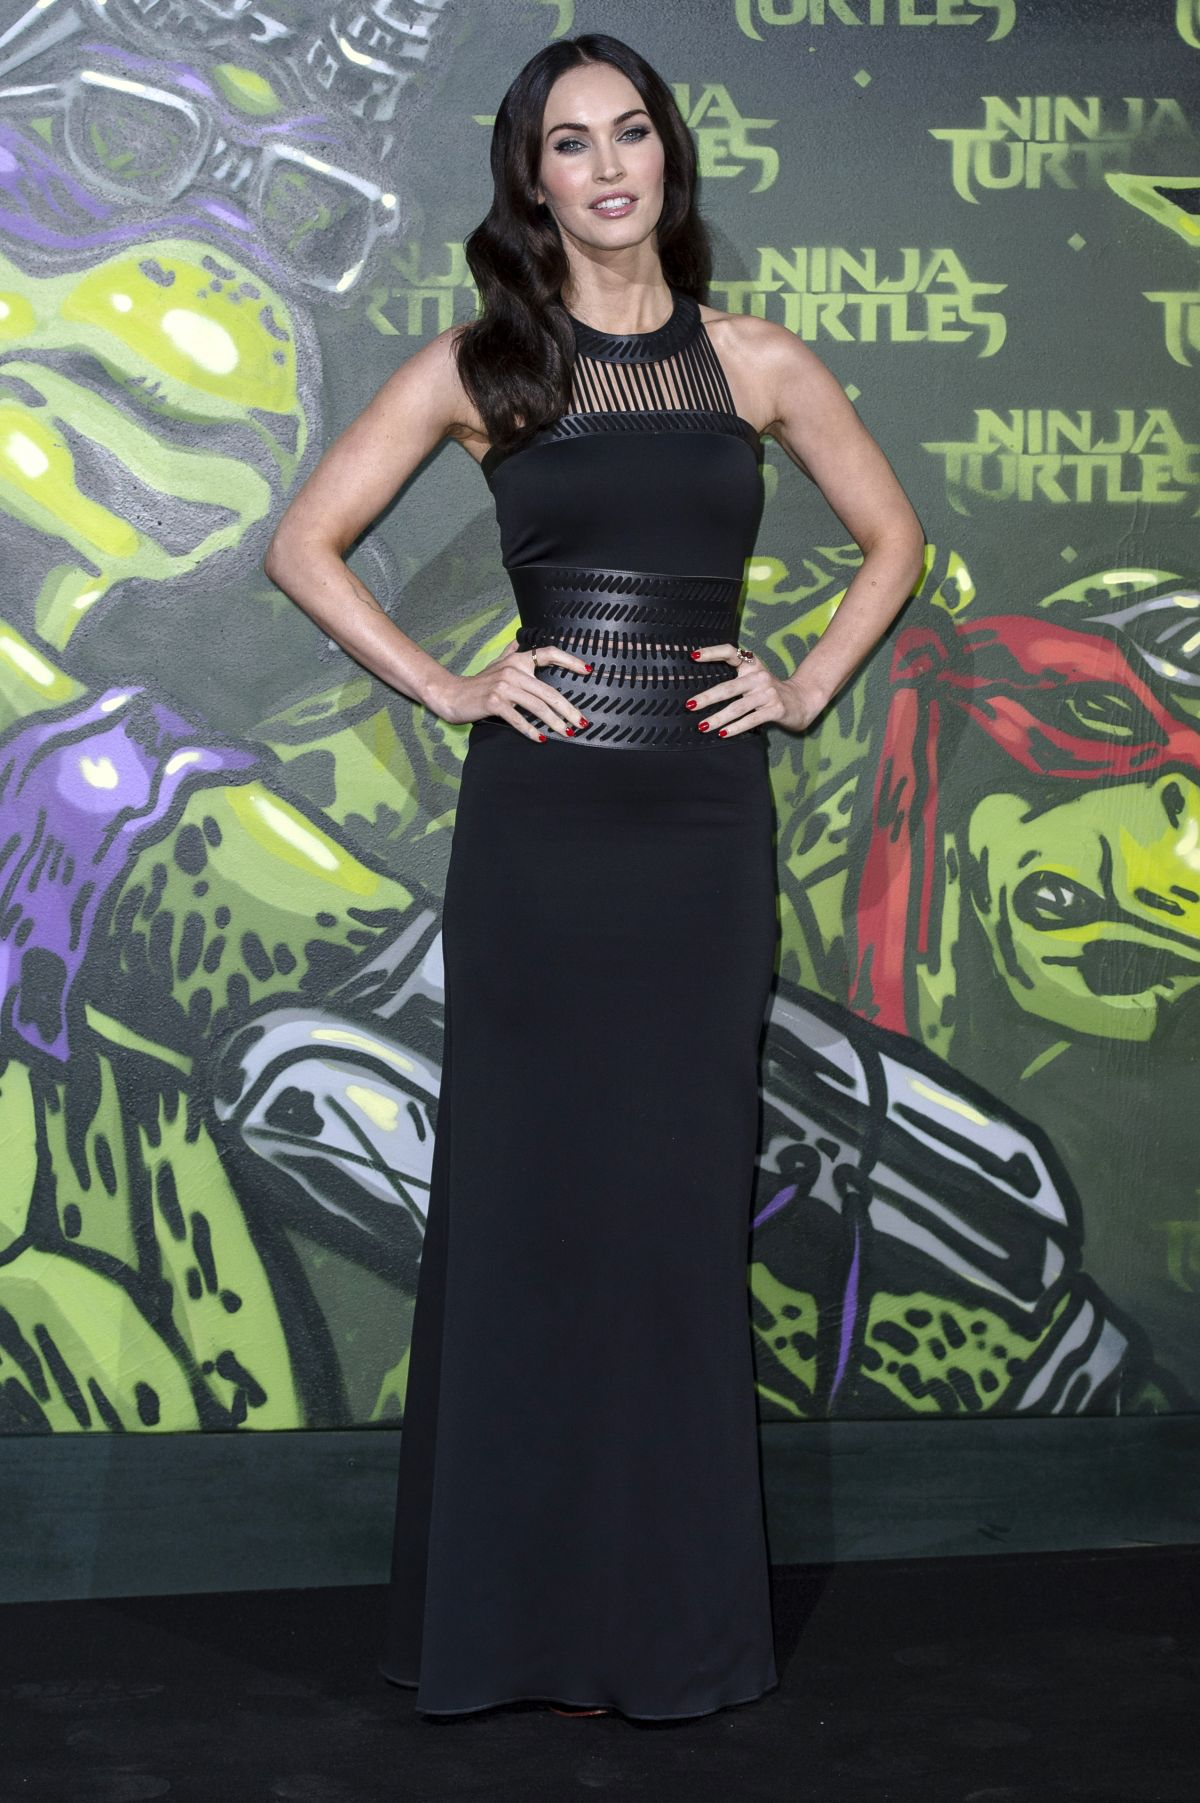 MEGAN FOX at Teenage Mutant Ninja Turtles Premiere in Berlin